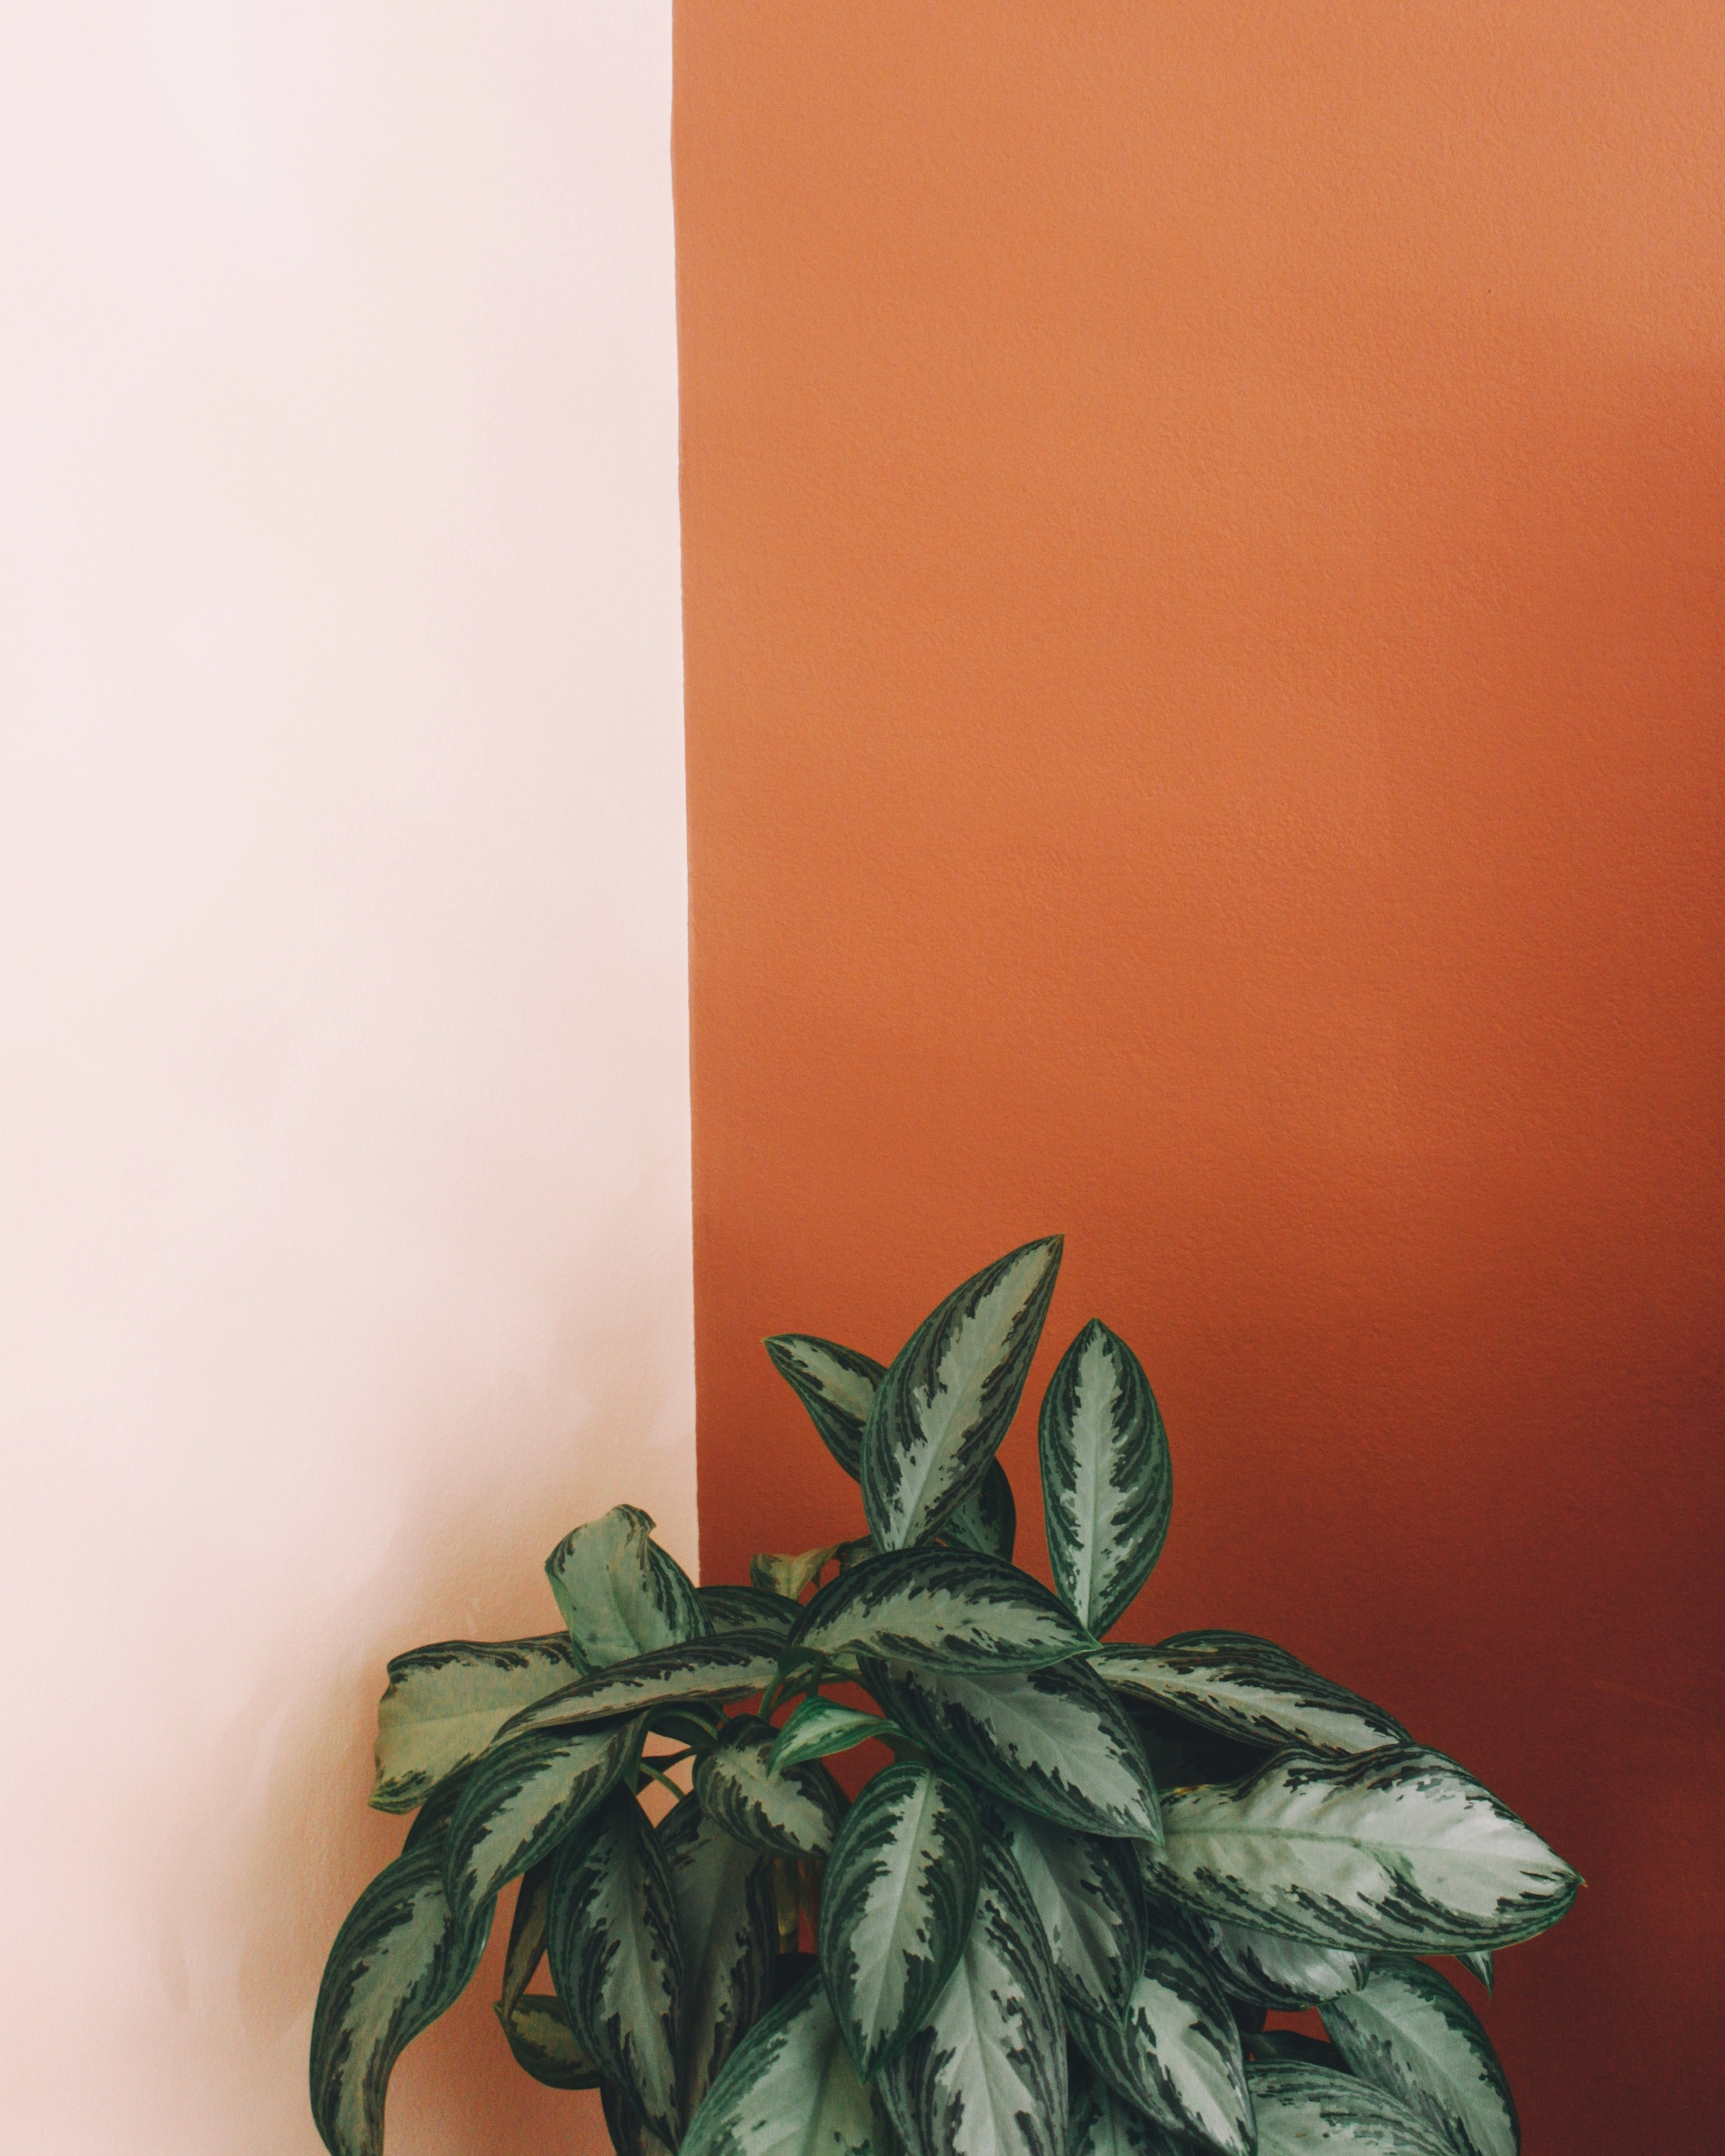 photo of Chinese evergreen plant